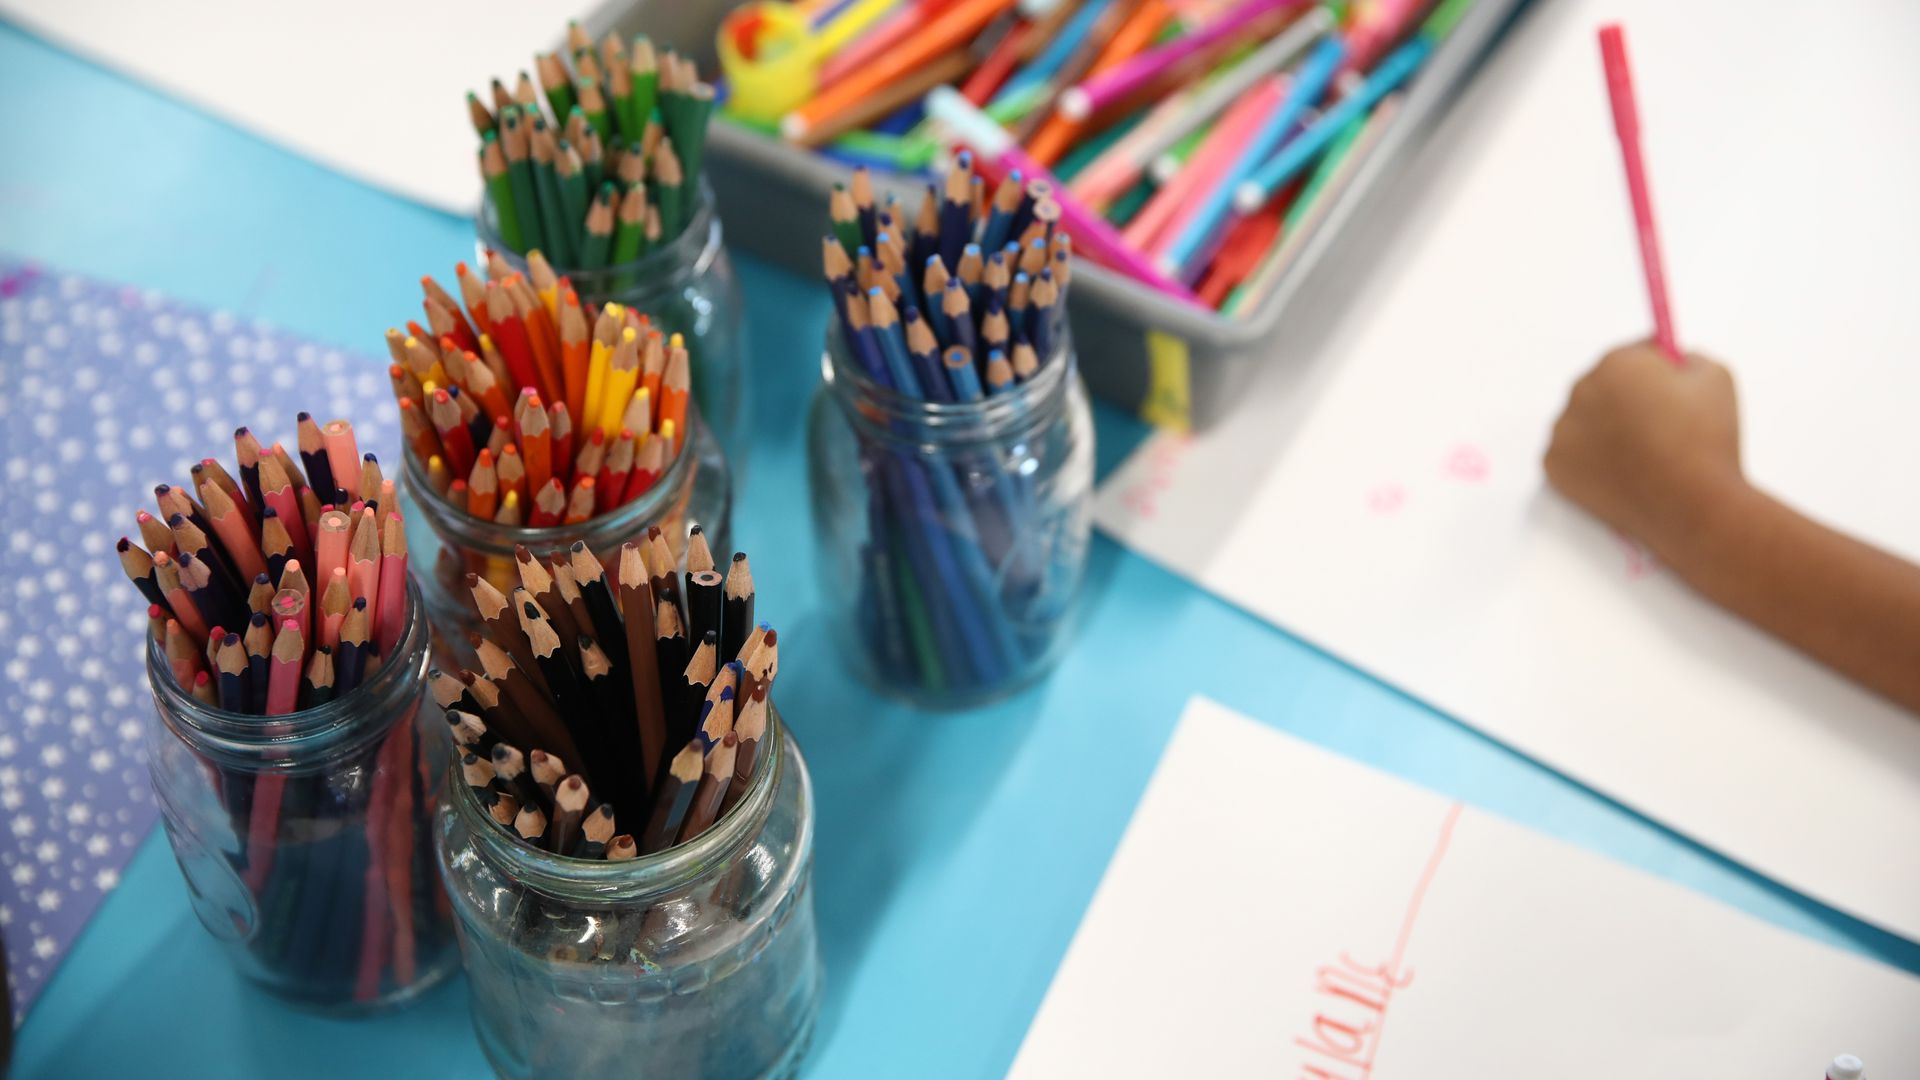 Piles of colored pencils are shown on a desk next to a child coloring